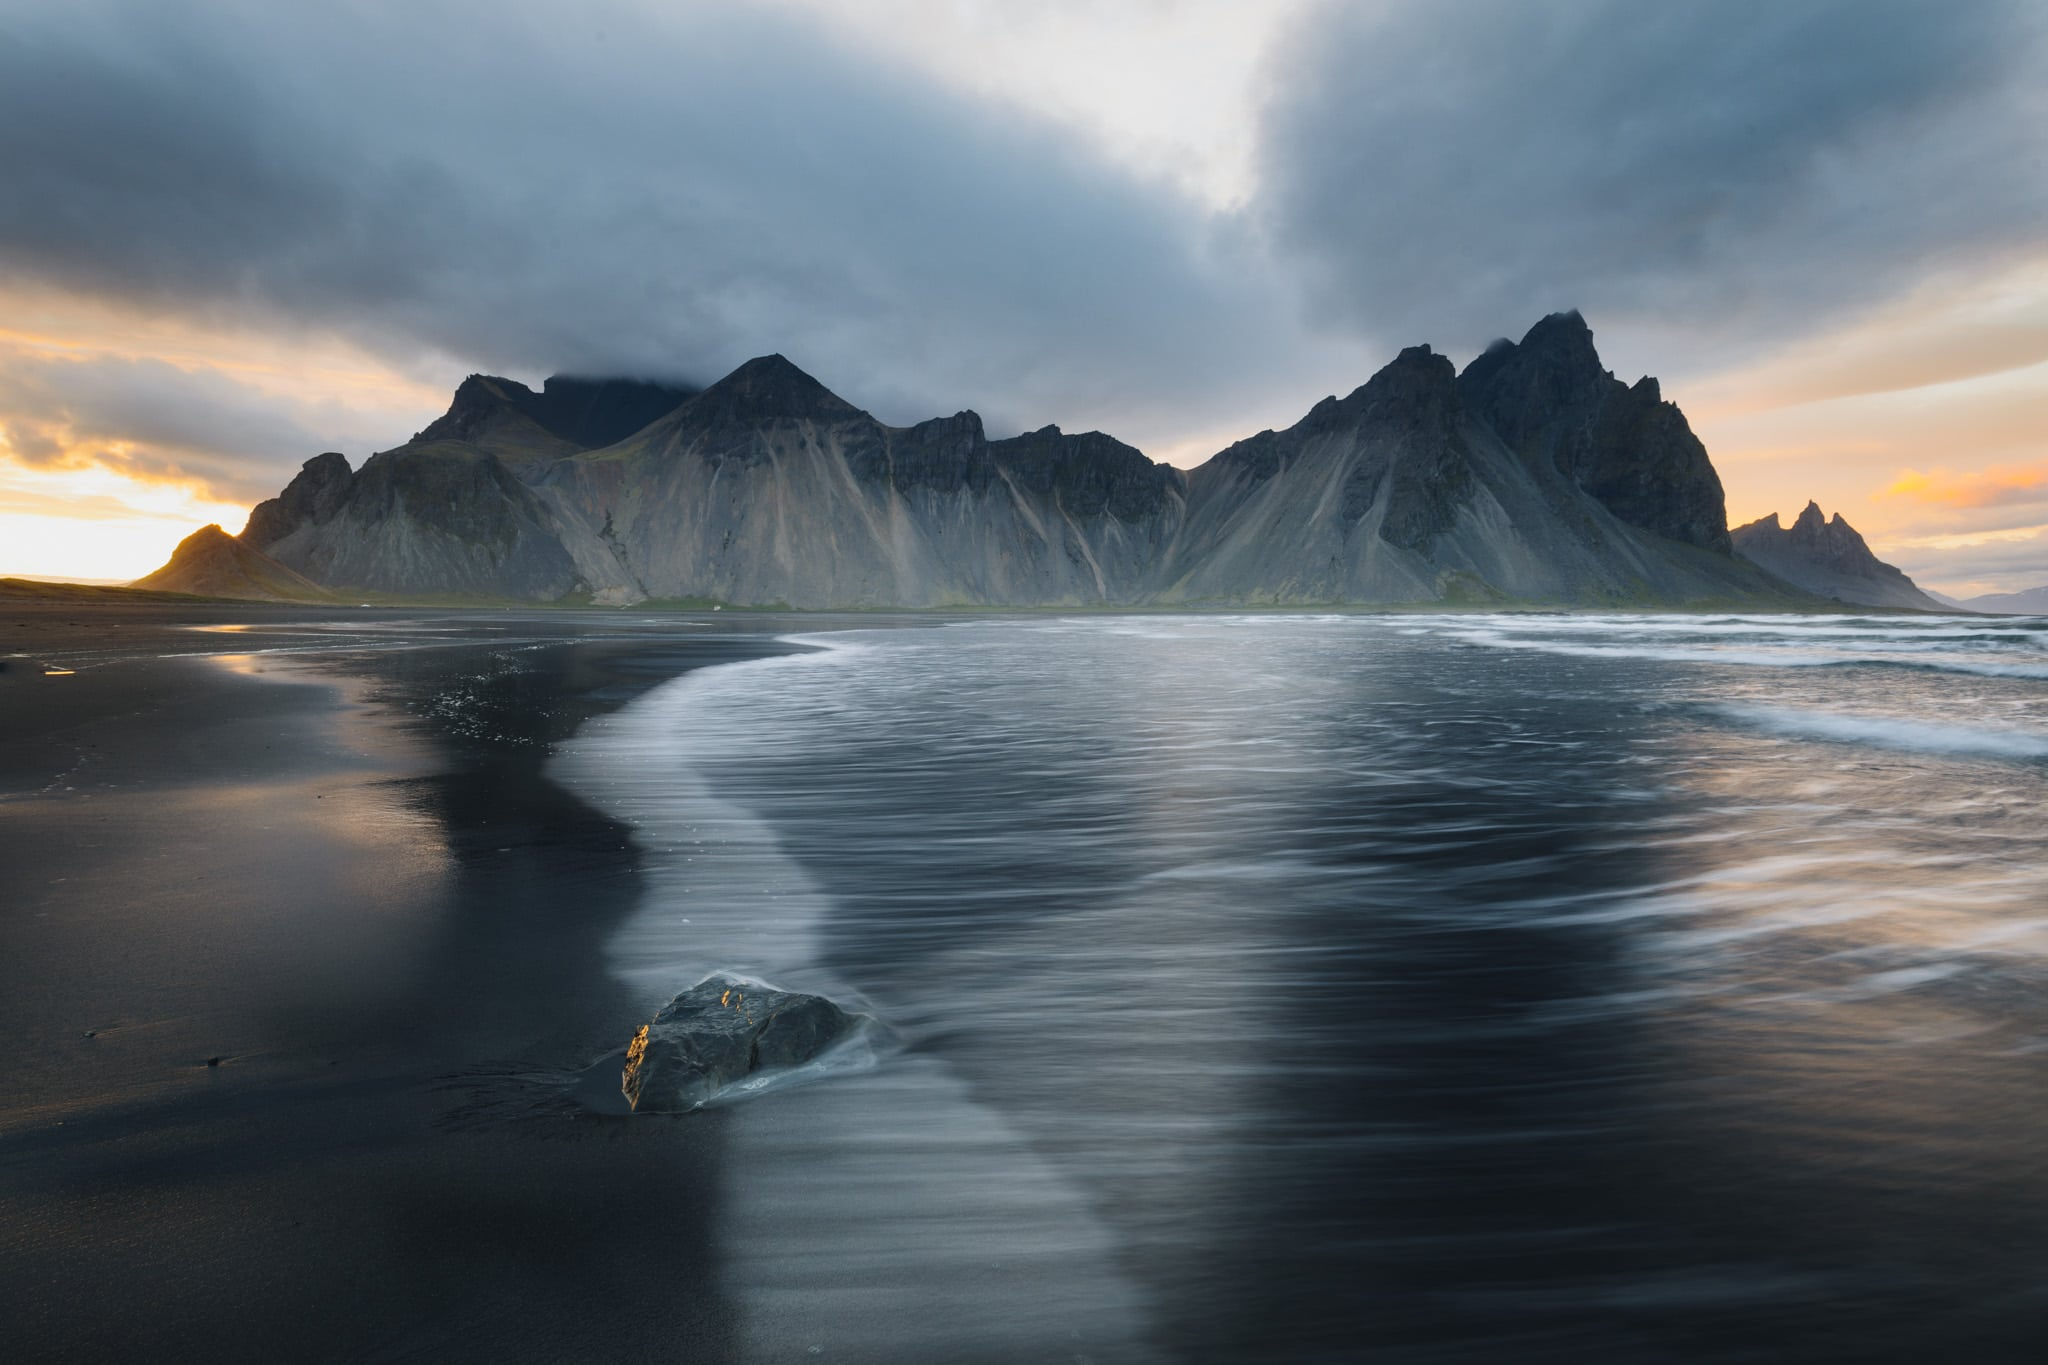 Sunset at Vestrahorn in Iceland